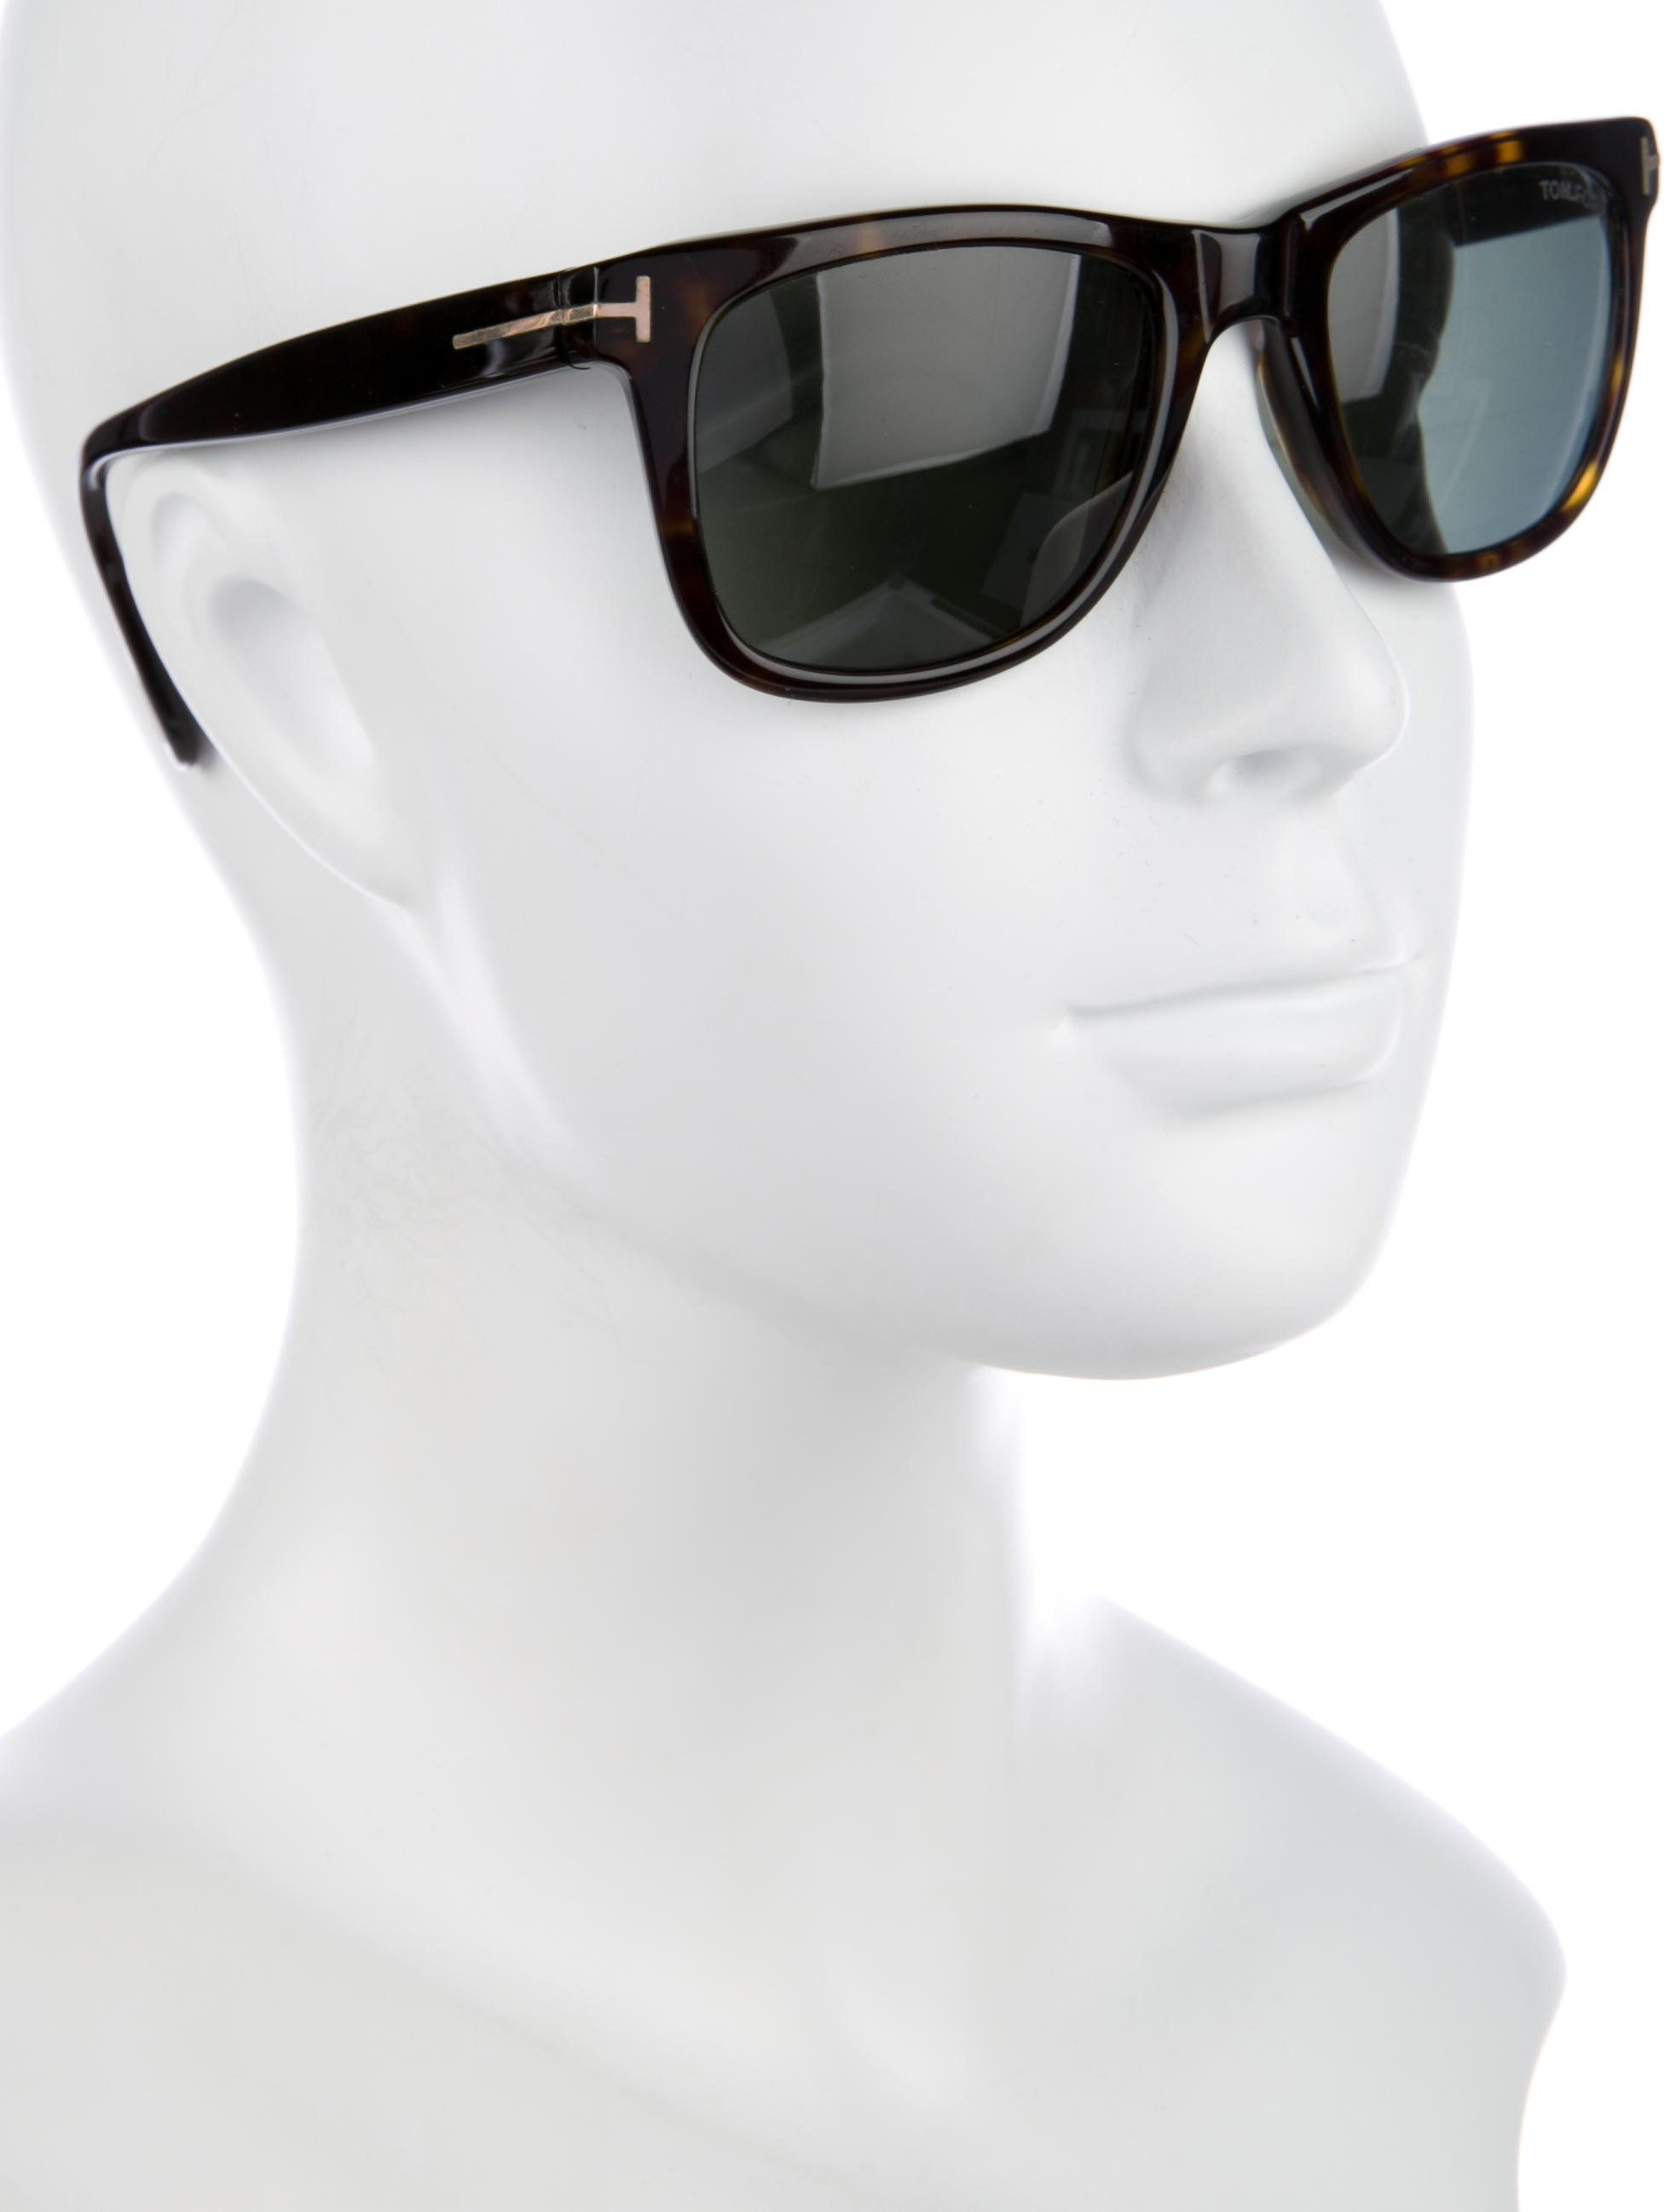 775c3453b4a Brown tortoiseshell acetate Tom Ford Leo sunglasses with gold-tone hardware  and tinted lenses. Includes case.